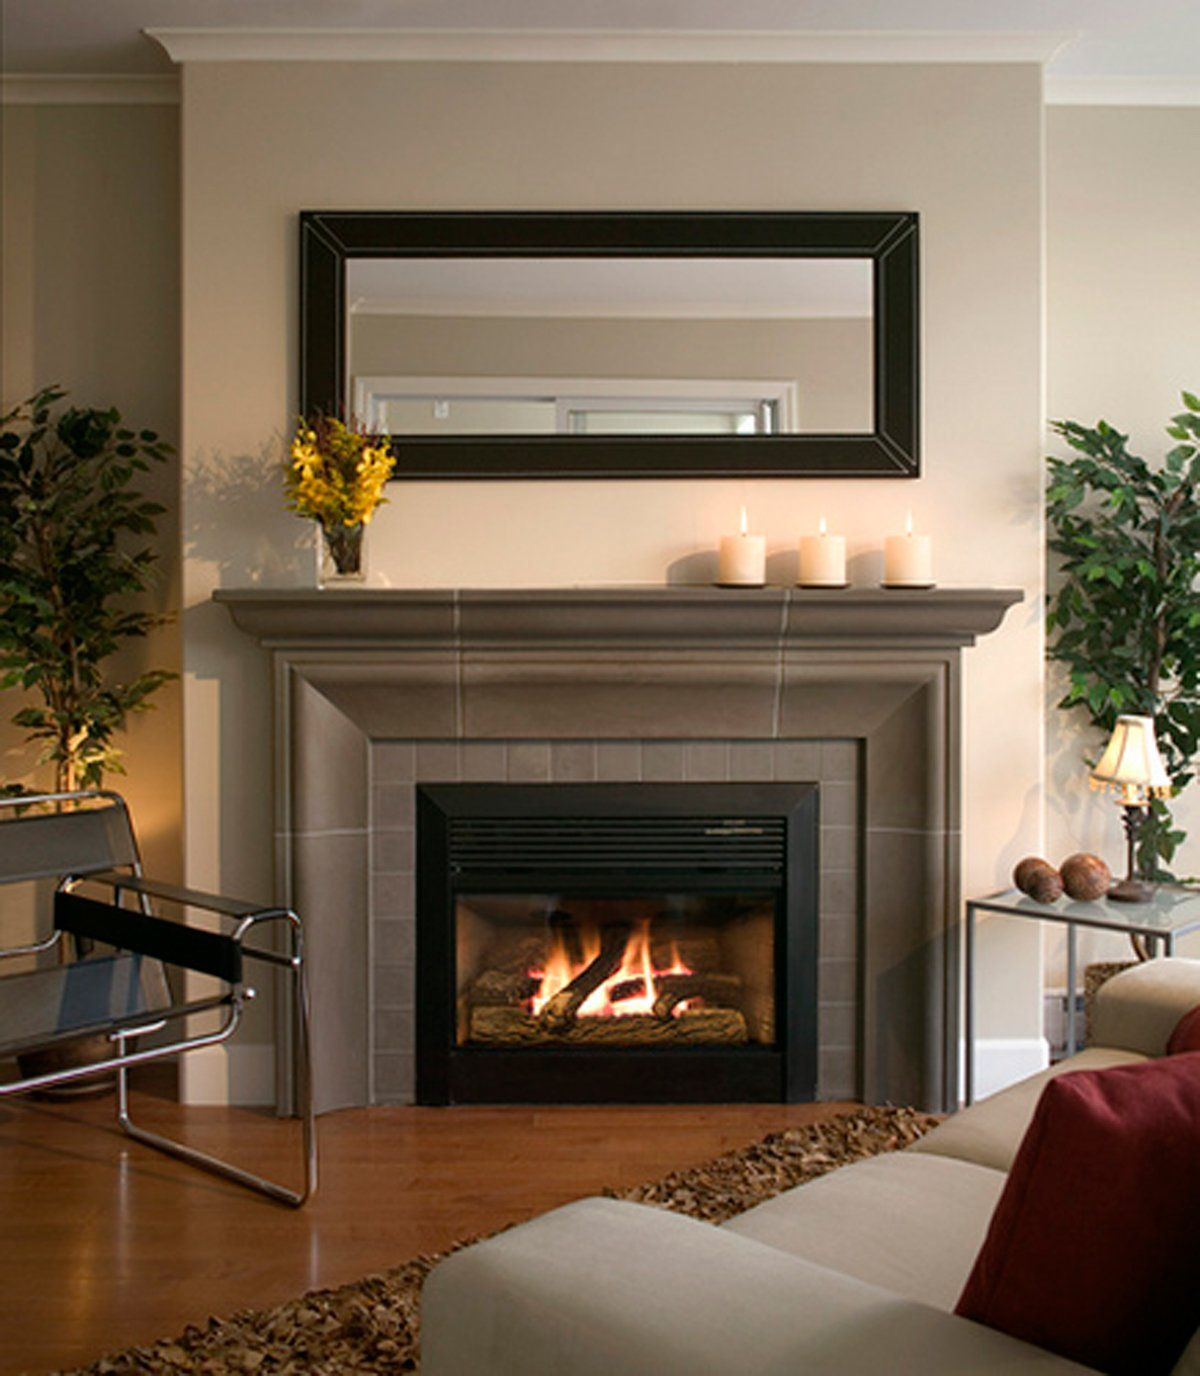 Fireplace Decorating Ideas For Christmas Home Fireplace Fireplace Surrounds Fireplace Mantel Designs